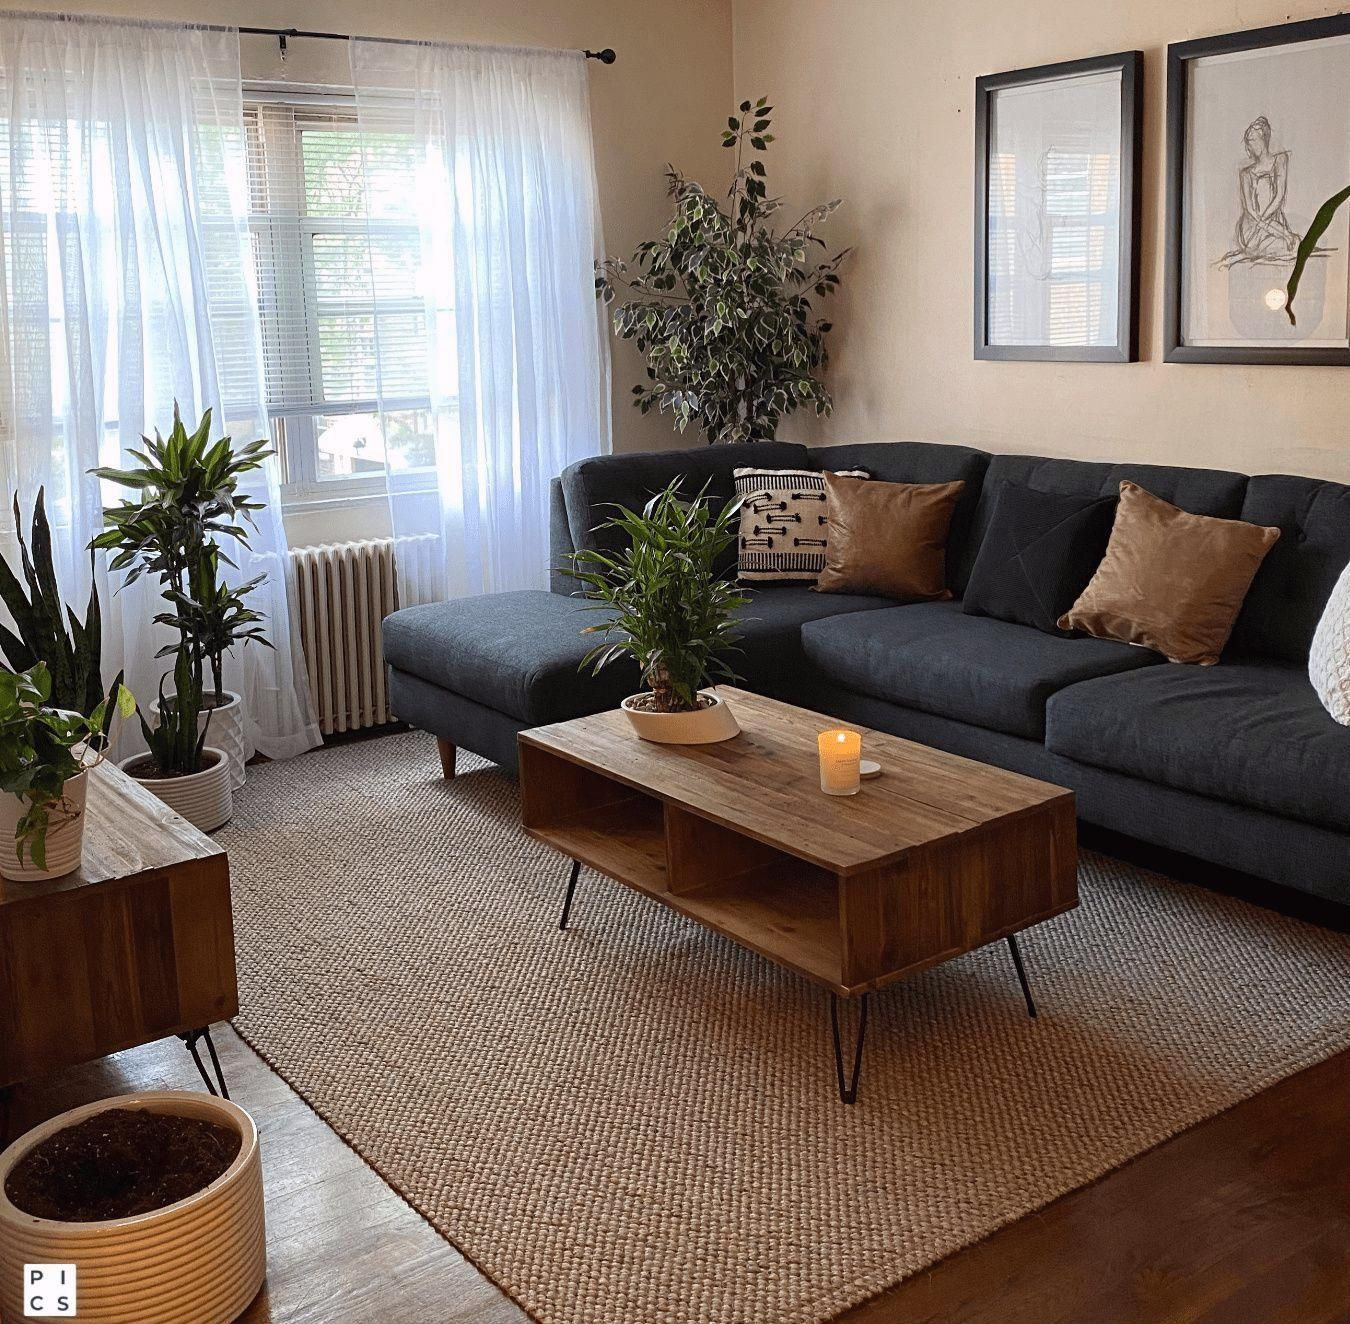 36 Ways to Effortlessly Create Space in Small Apartment Living Rooms - Cozy Home 101